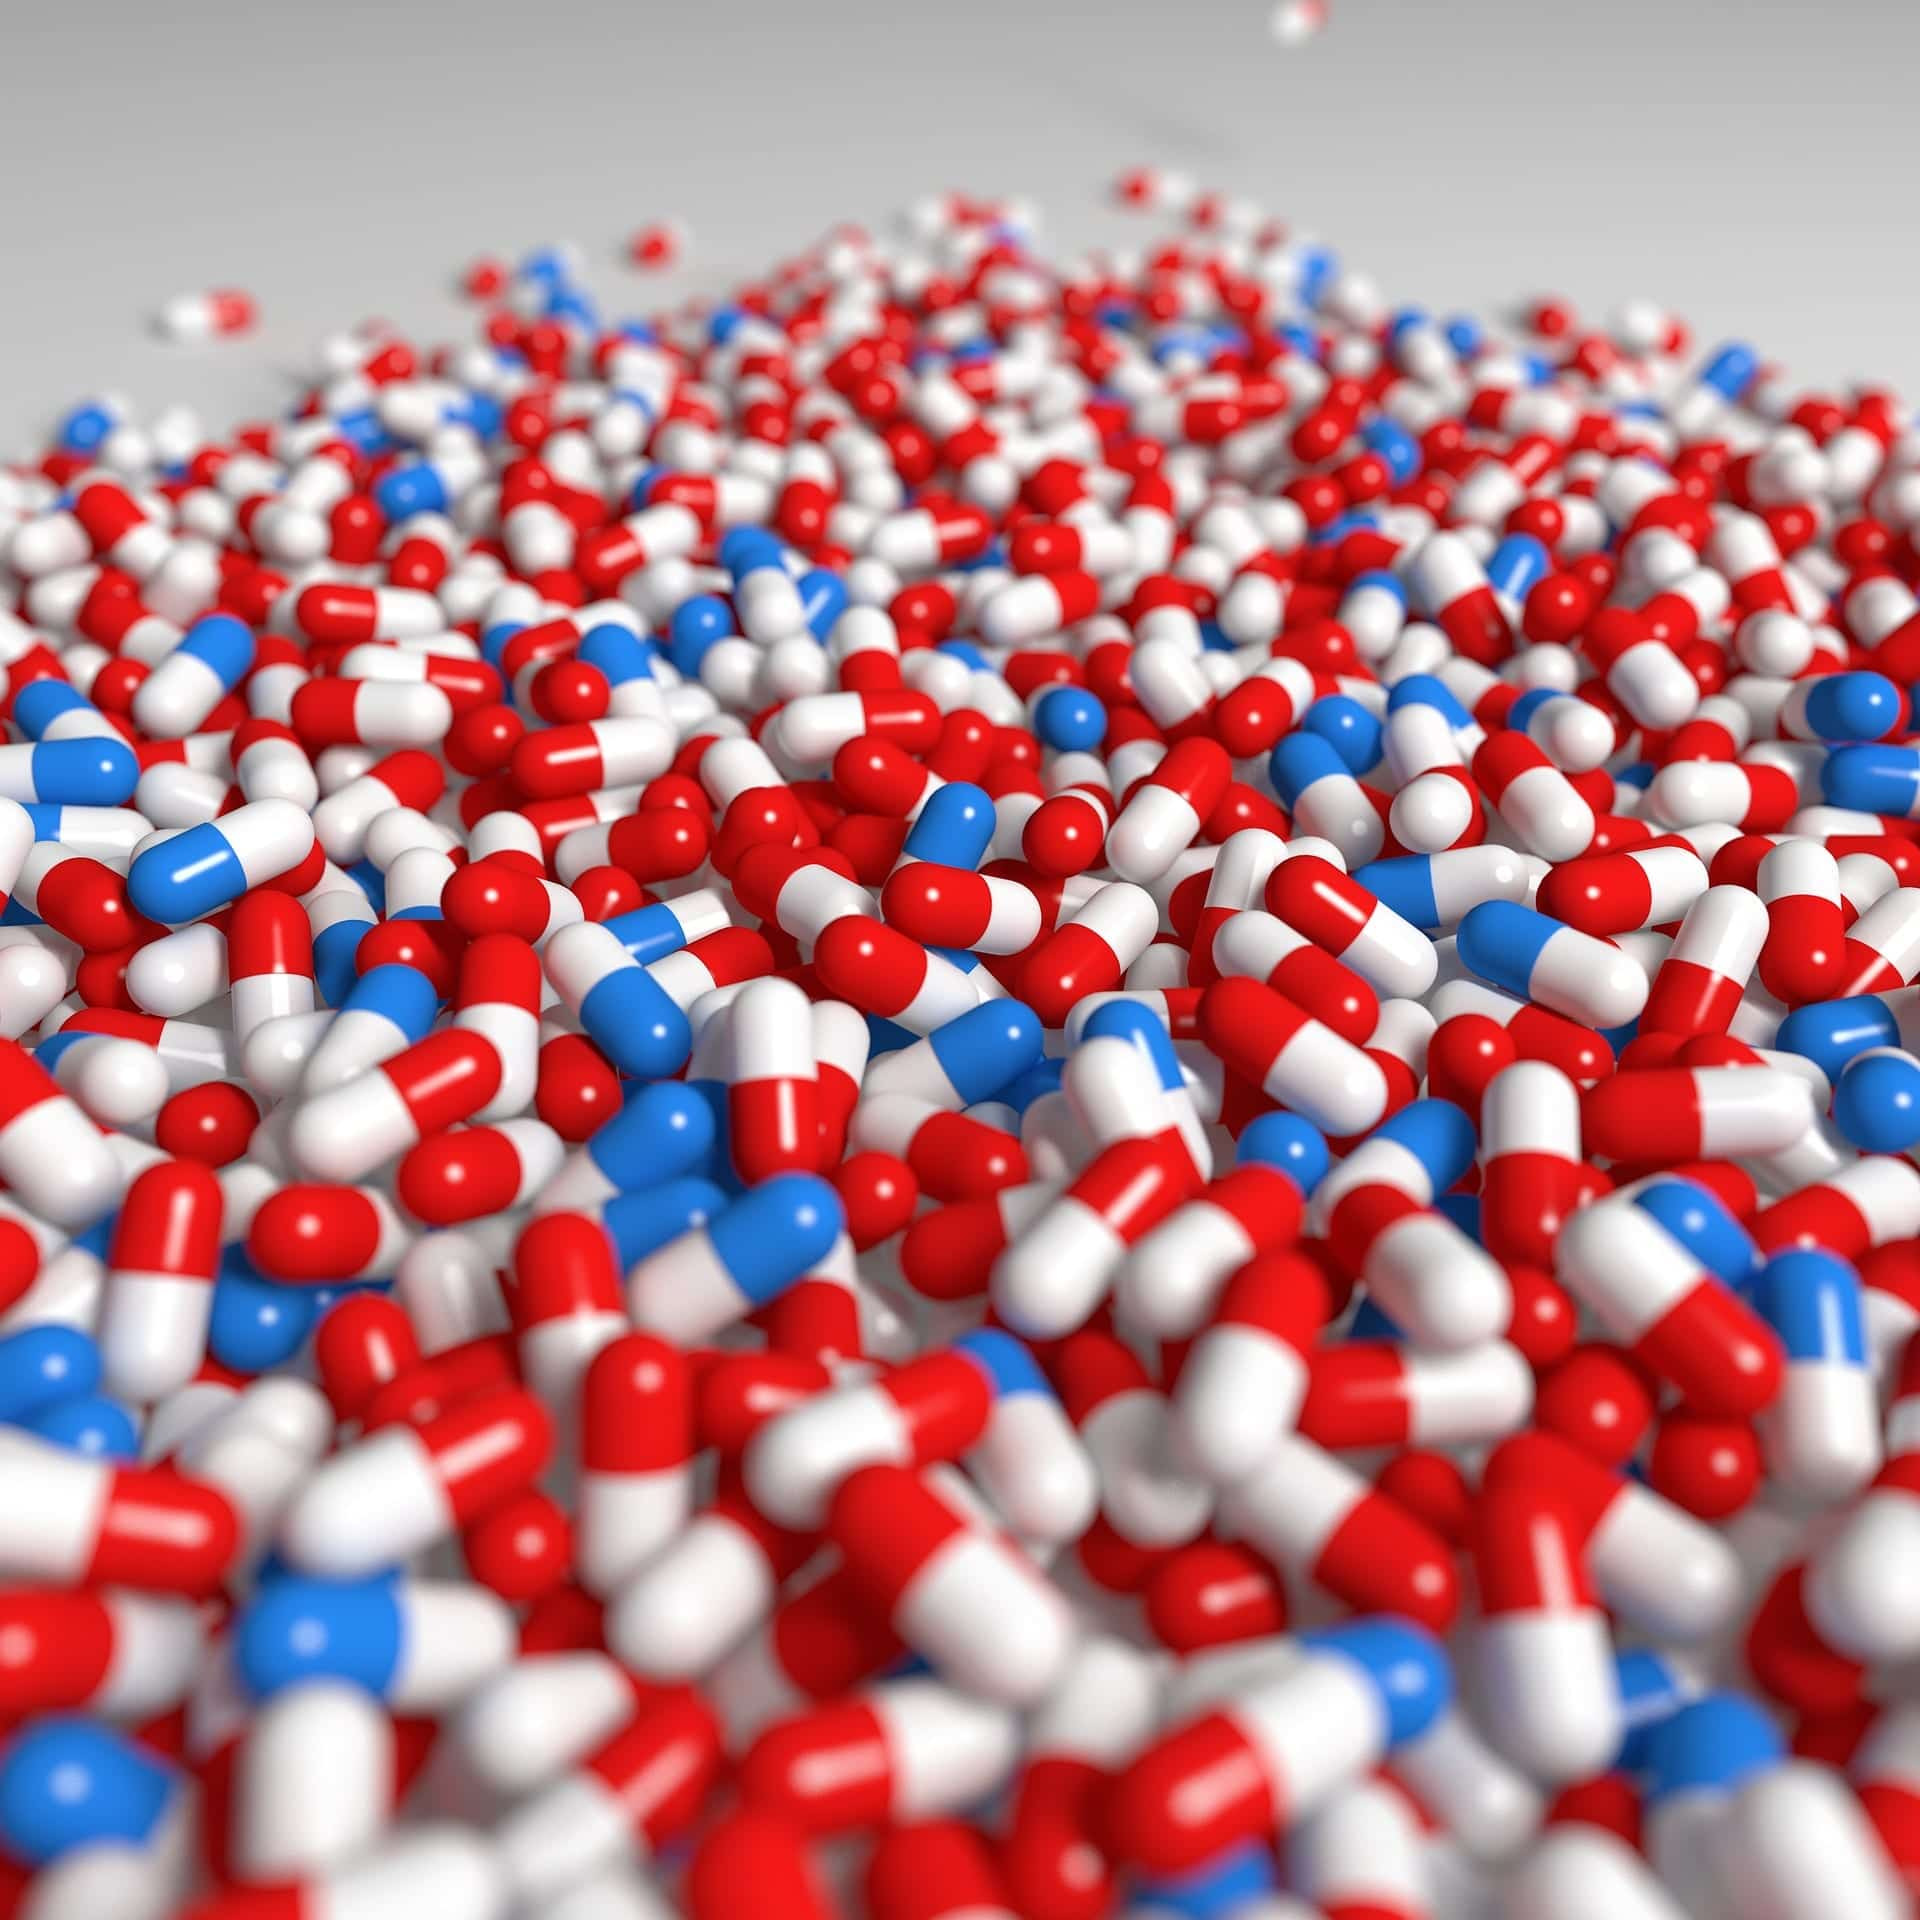 Red/white and blue/white capsules; image by mmmCCC, via Pixabay.com.